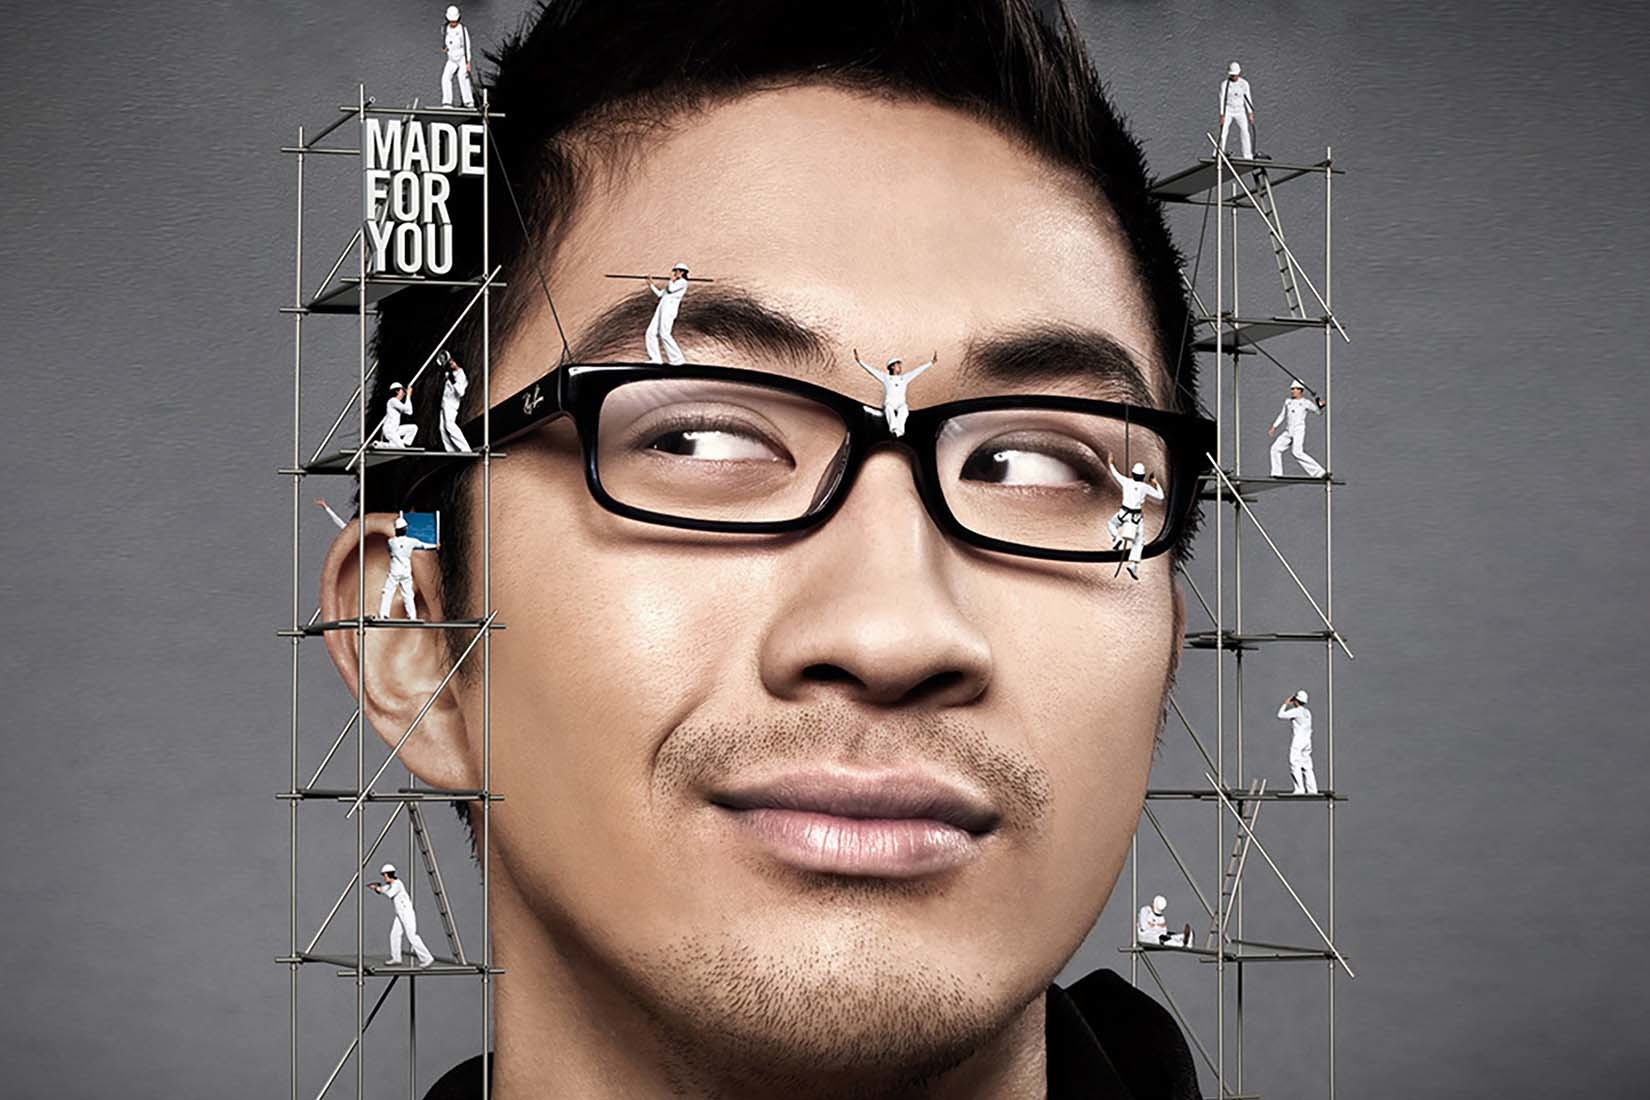 Ray-Ban spectacles Poster Guy